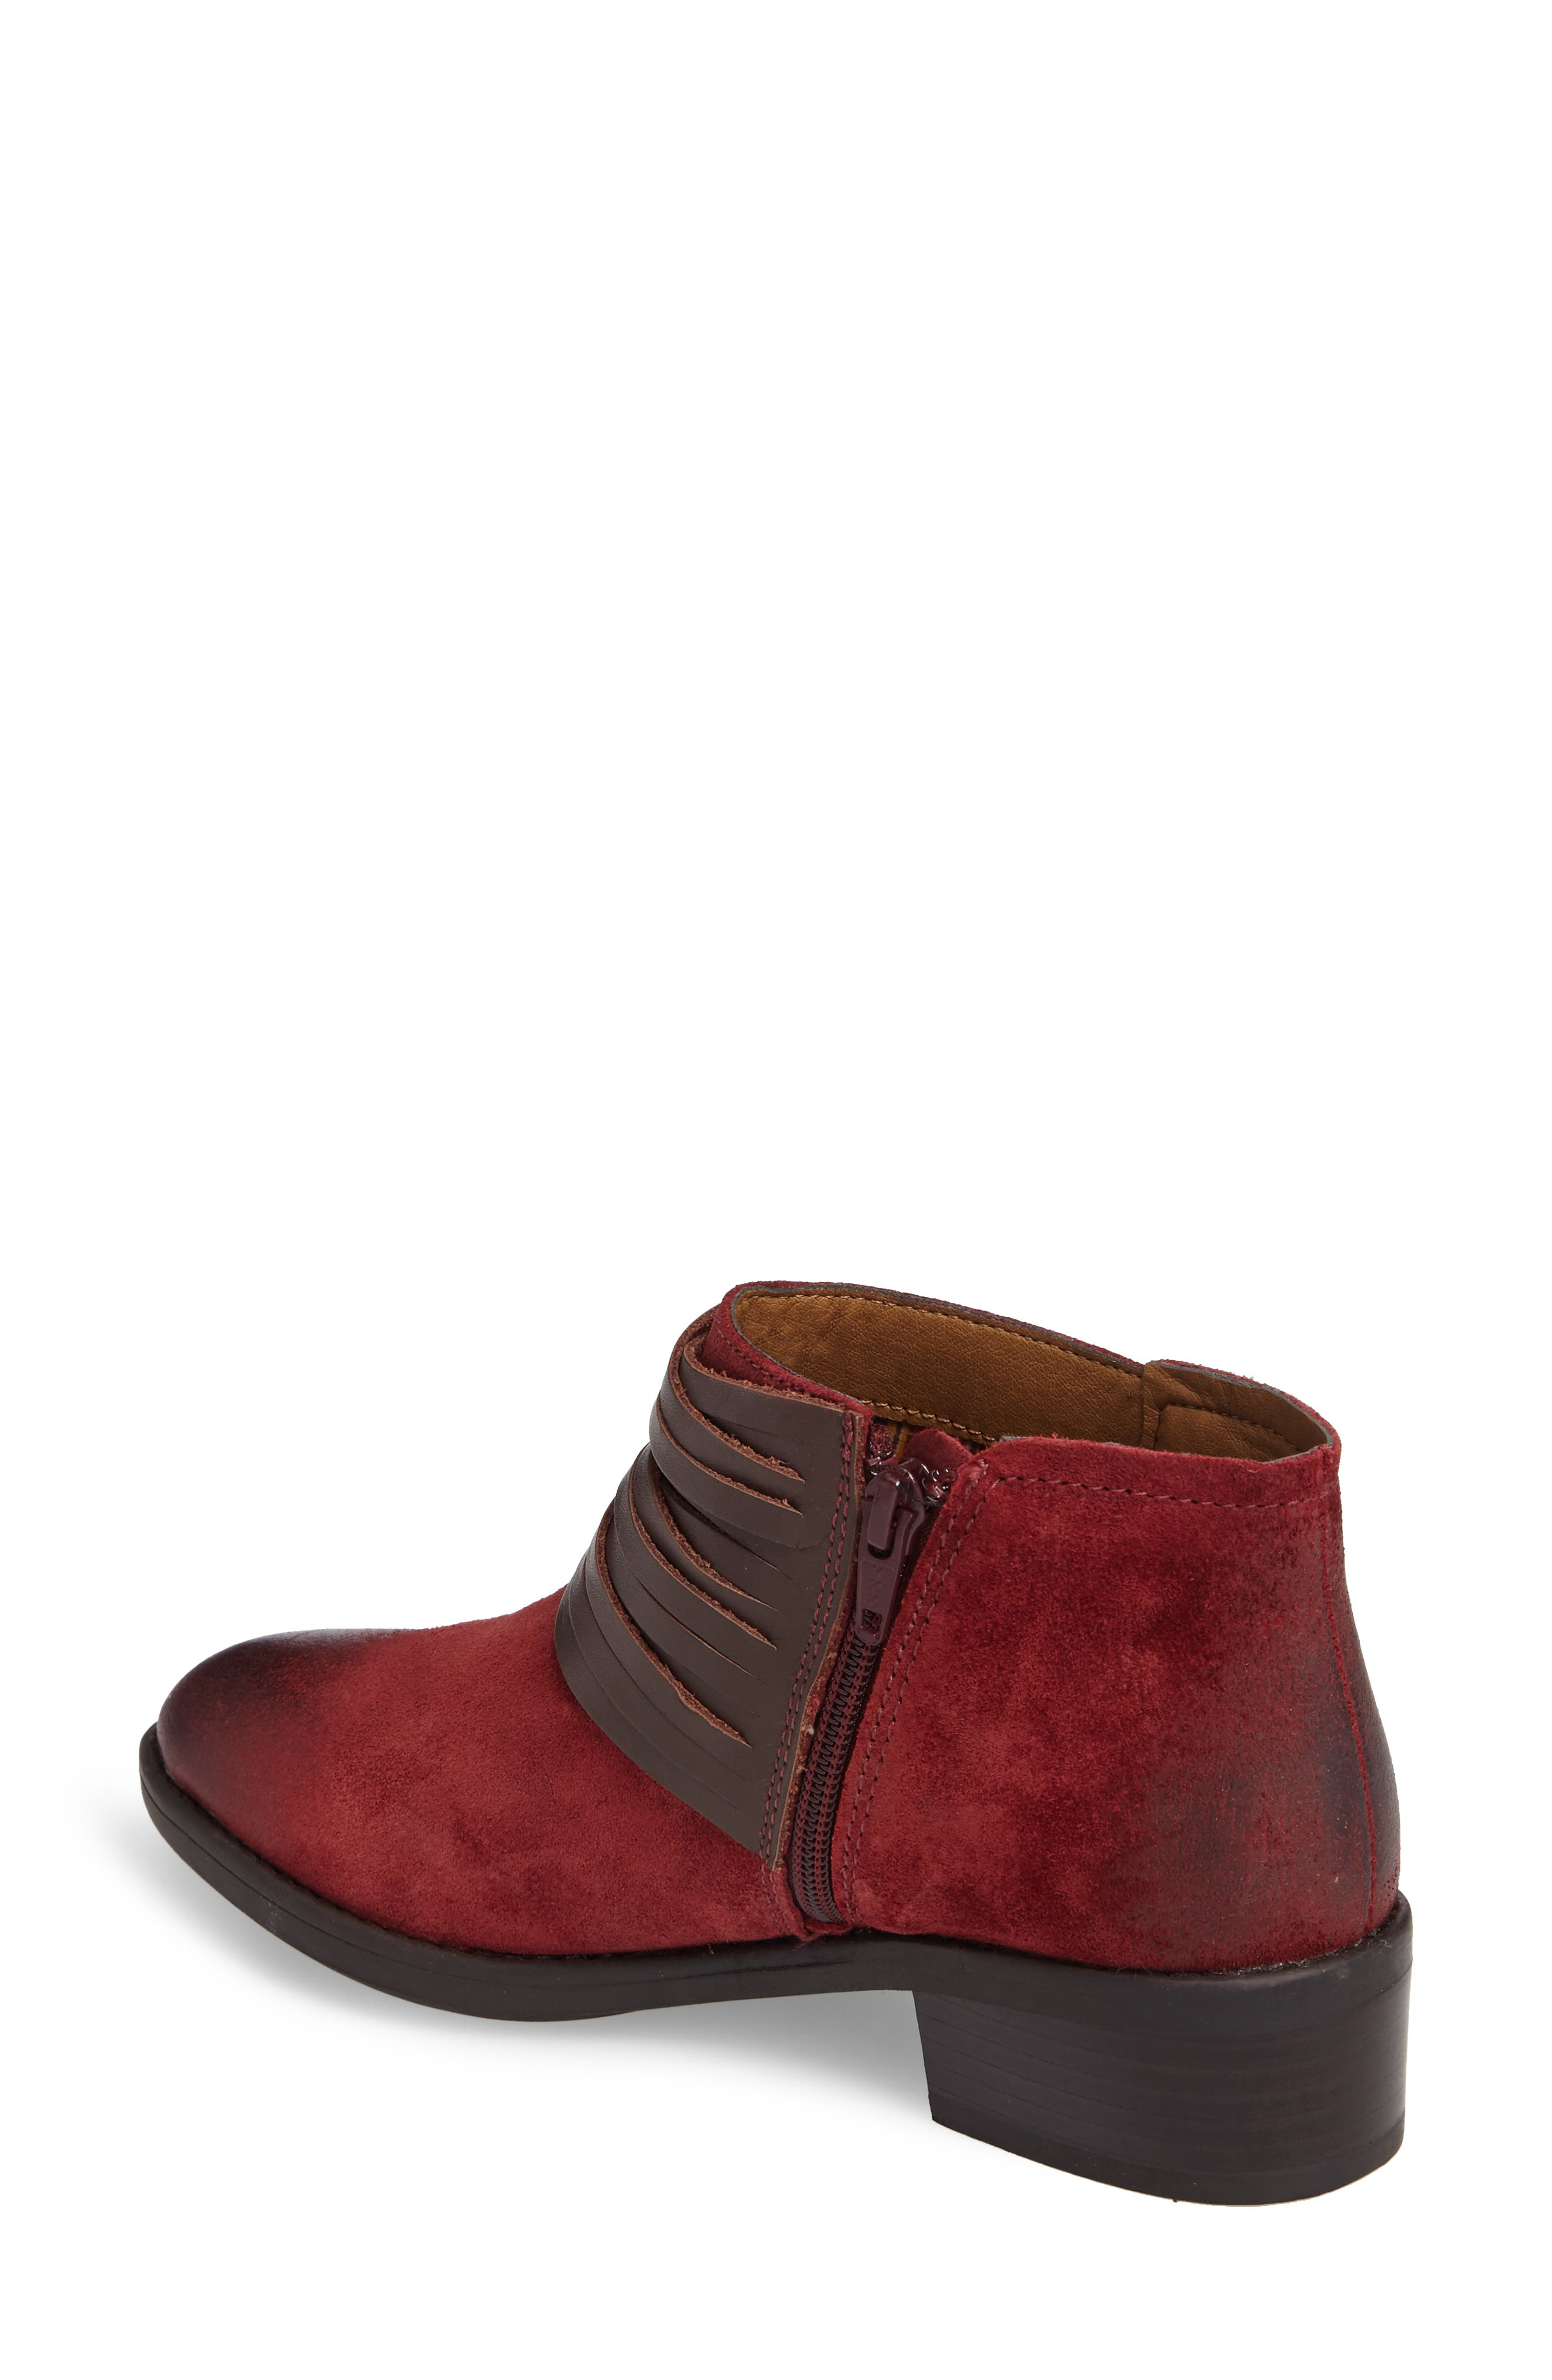 Corliss Strappy Bootie,                             Alternate thumbnail 10, color,